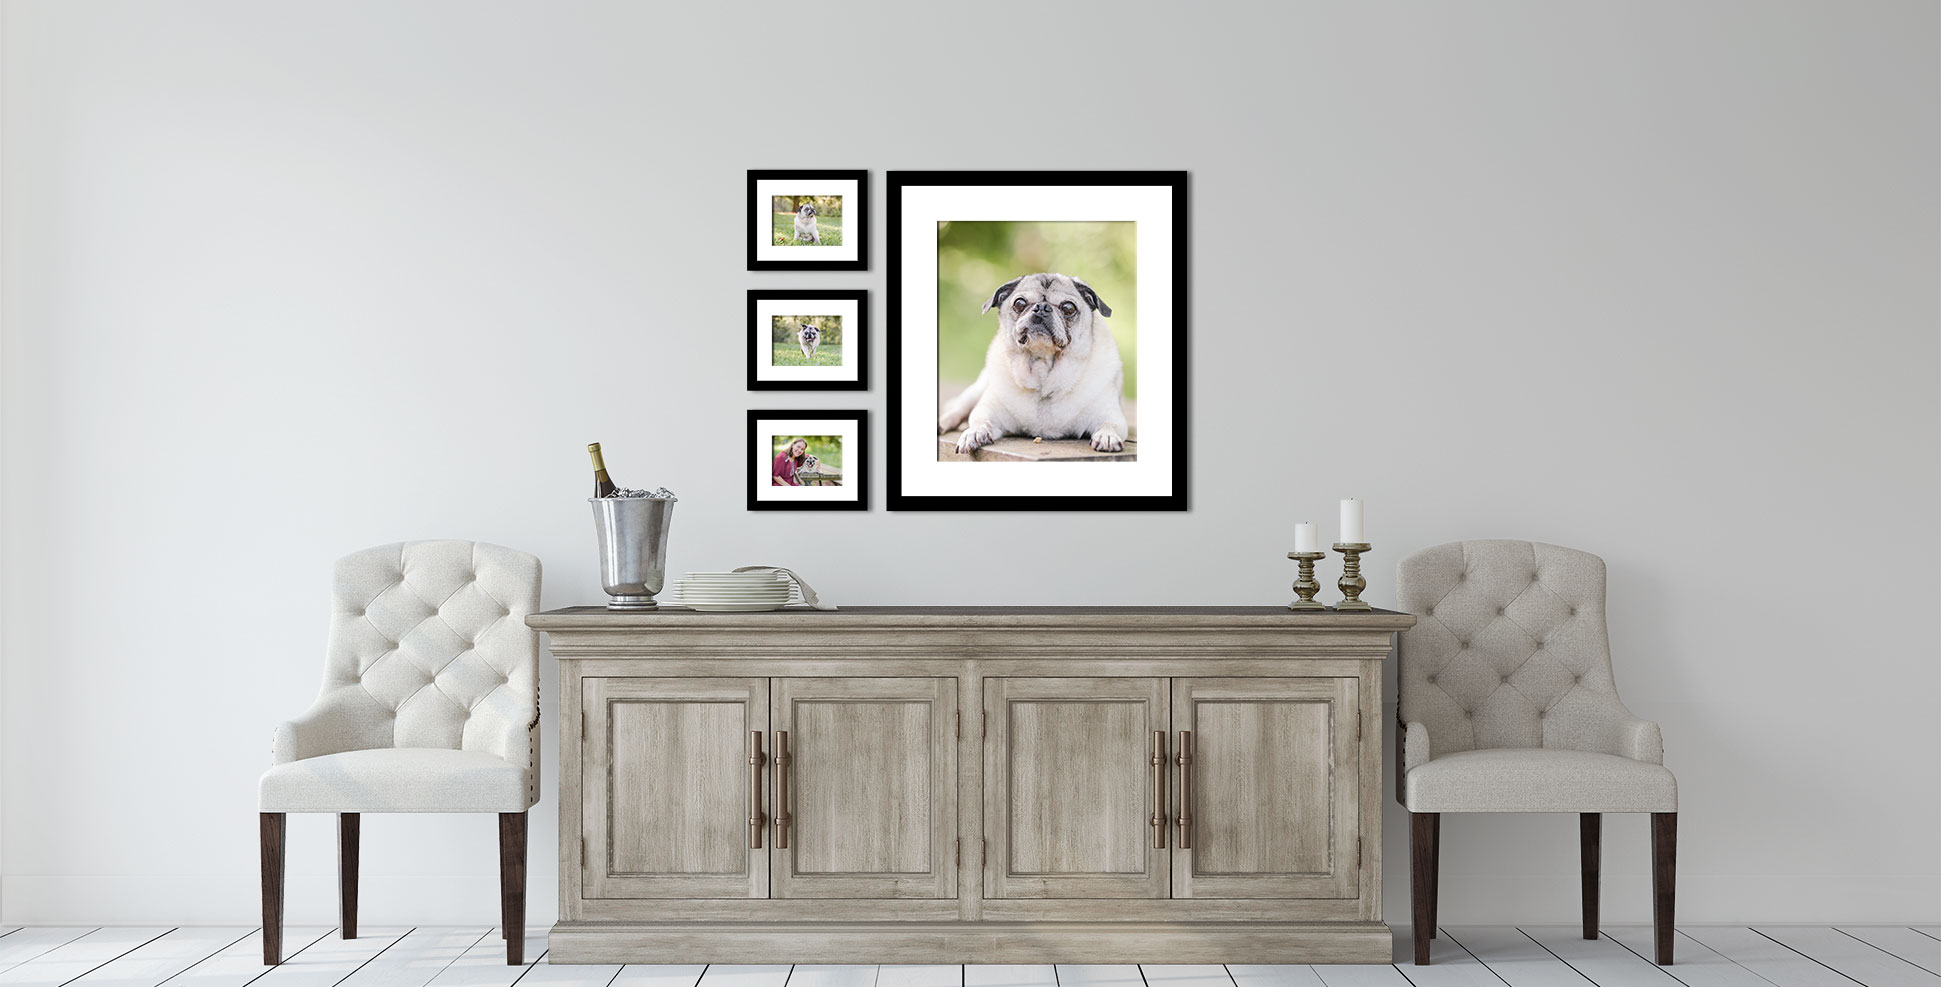 Creating a cohesive wall gallery with dog photographs of pugs in matching frames.